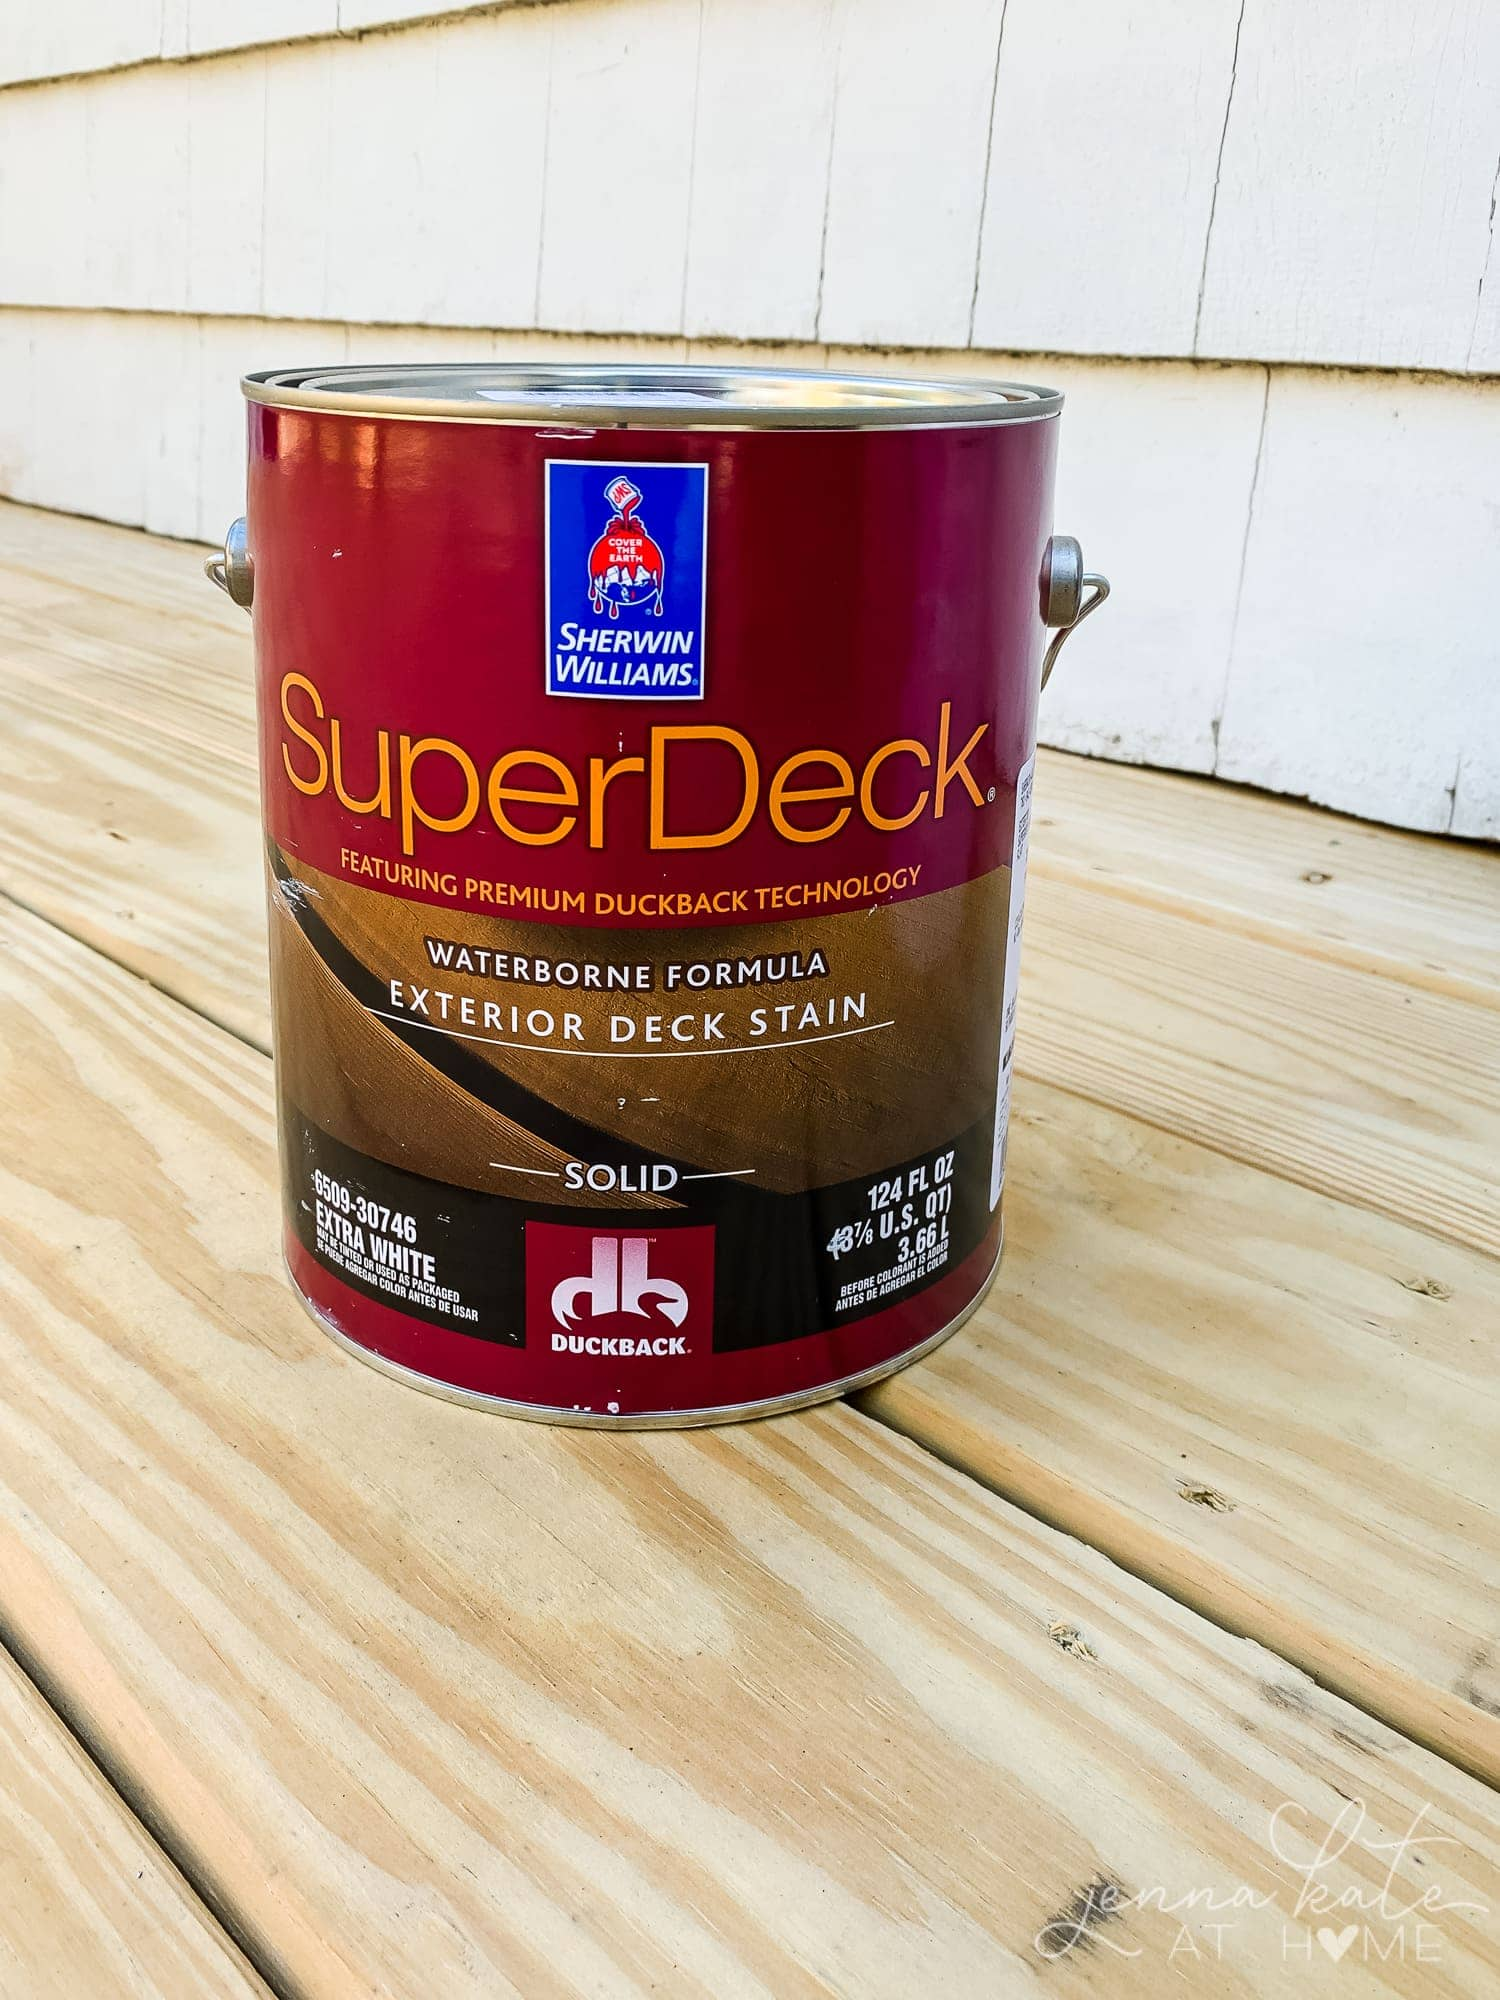 Sherwin Williams SuperDeck solid deck stain.